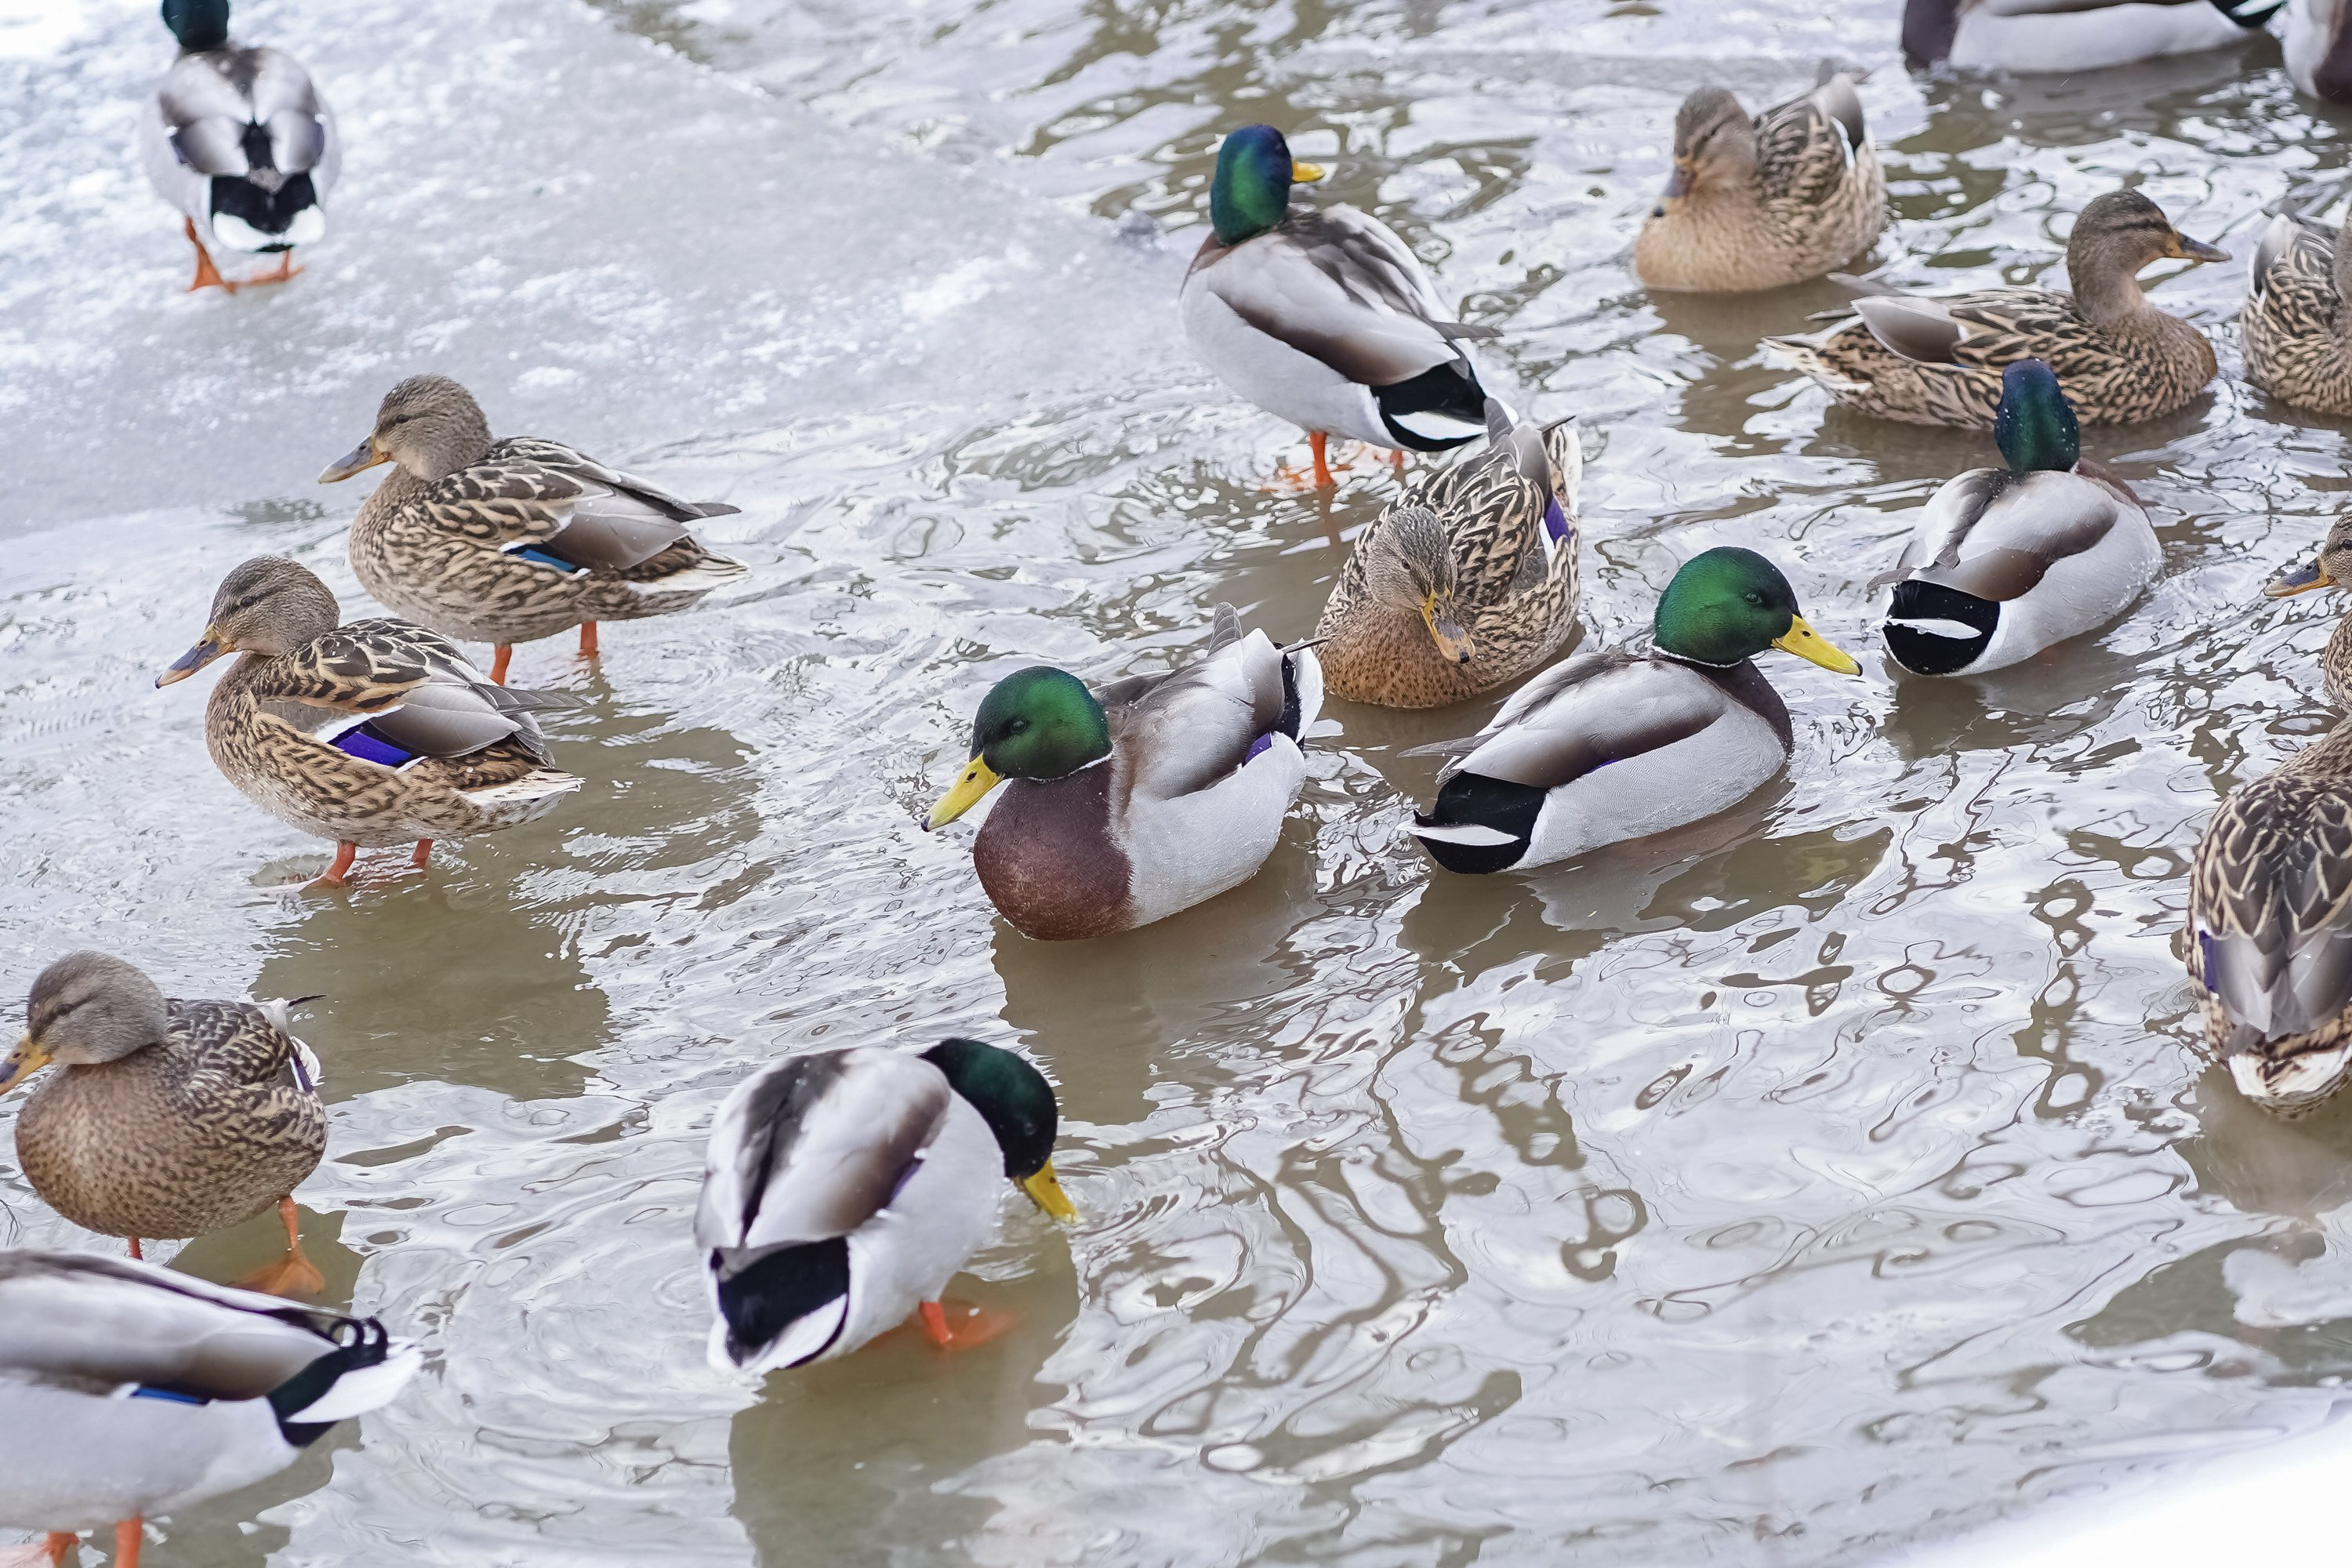 A flock of ducks are swimming in the water in winter example image 1